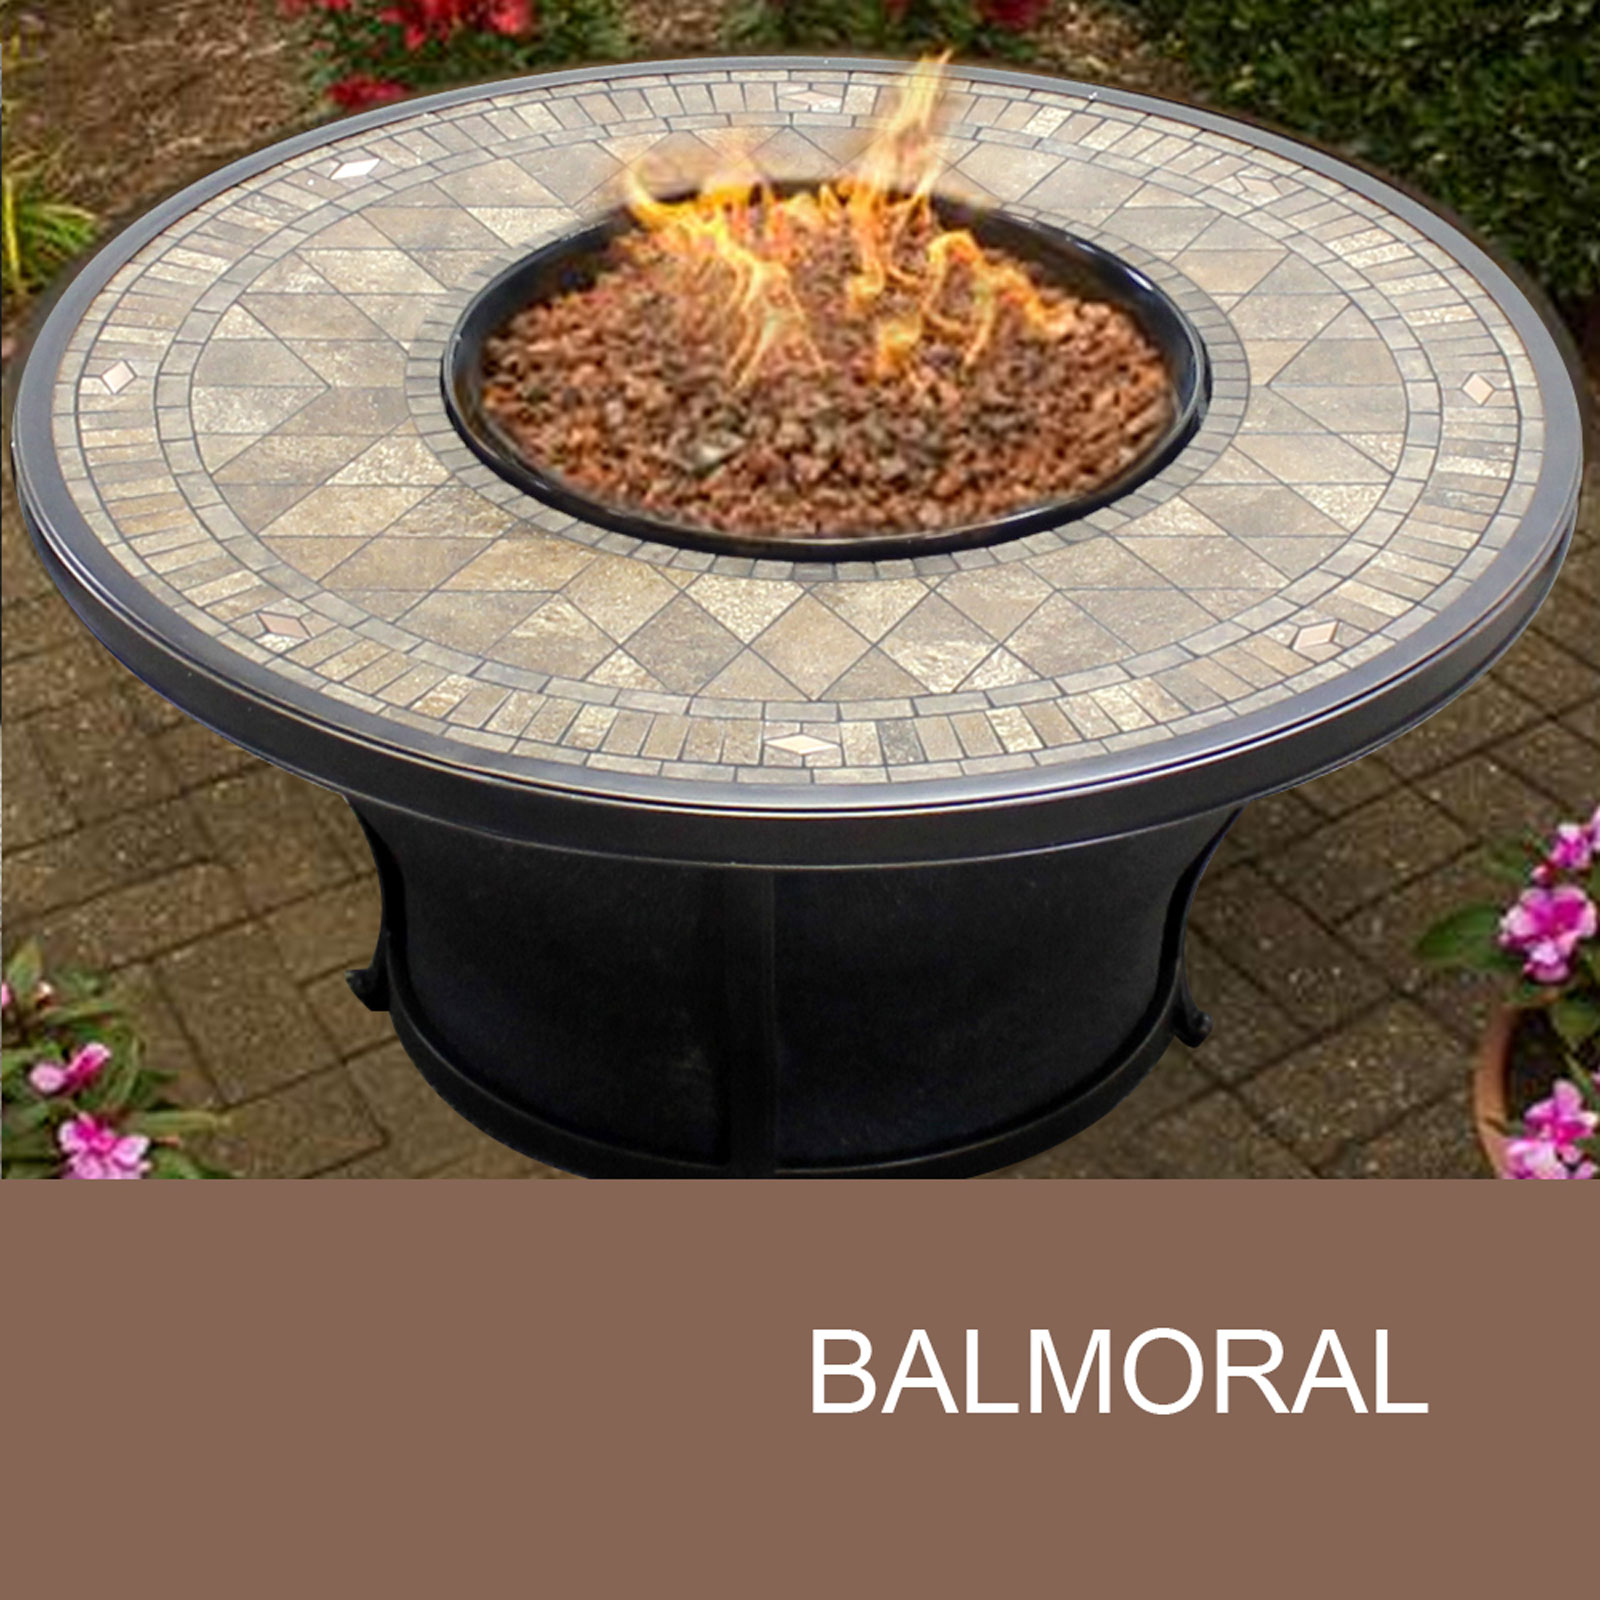 Round Fire Table Agio Balmoral Fire Pit Design Furnishings throughout dimensions 1600 X 1600